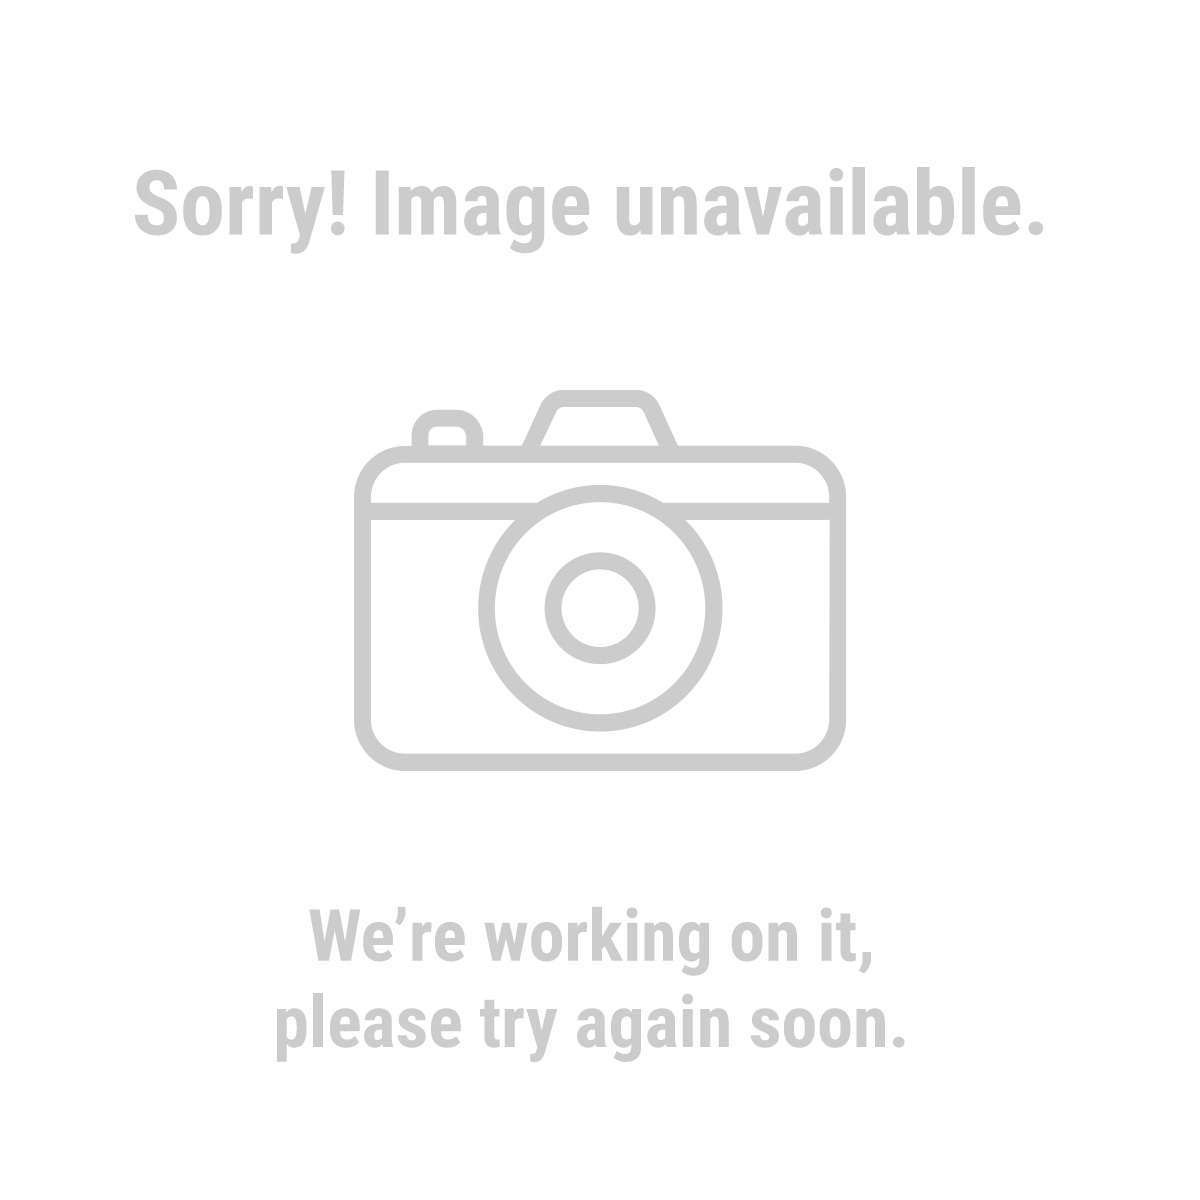 Why Aren T Trailer Spare Tire Mounts Standard Malibu Boats